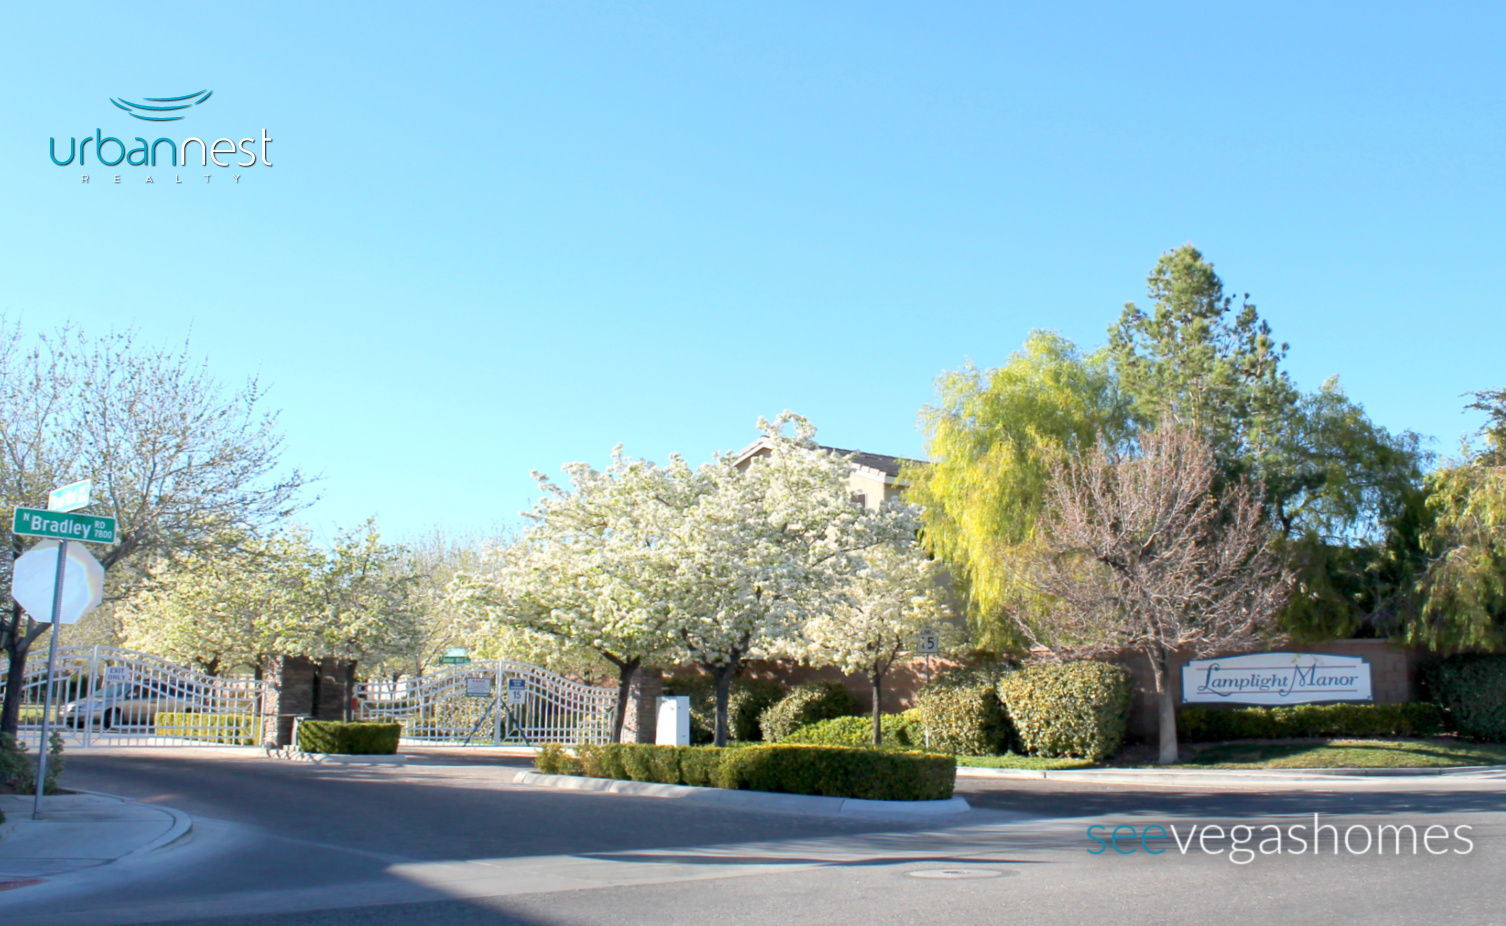 Lamplight Manor Las Vegas NV 89131 Rosewood Manor SeeVegasHomes